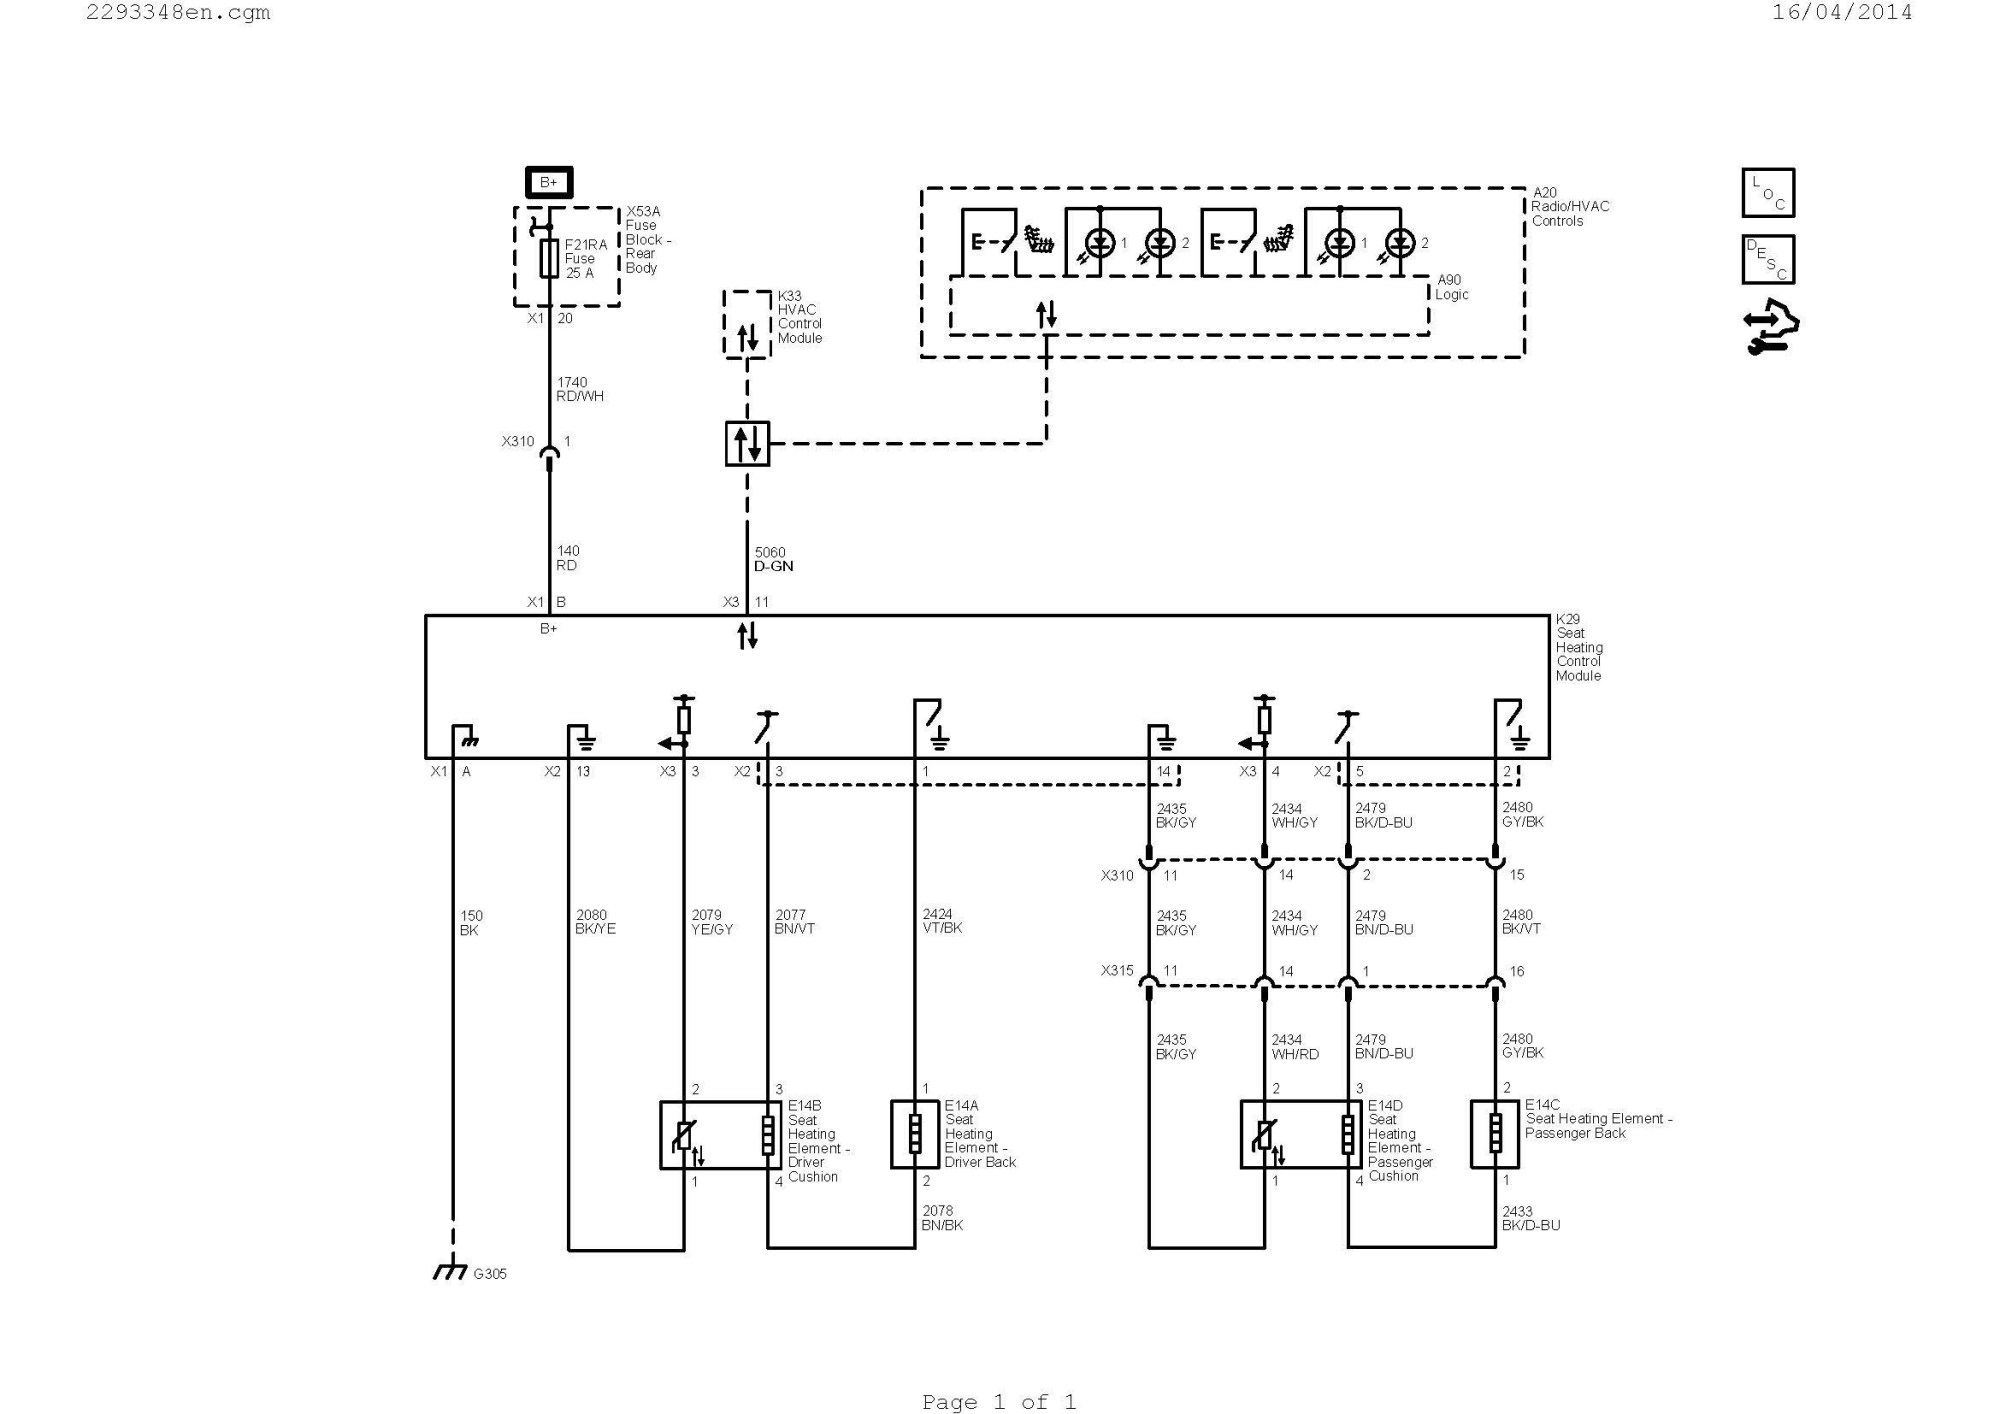 hight resolution of electric heat thermostat wiring diagram central heating thermostat wiring diagram central boiler thermostat wiring diagram